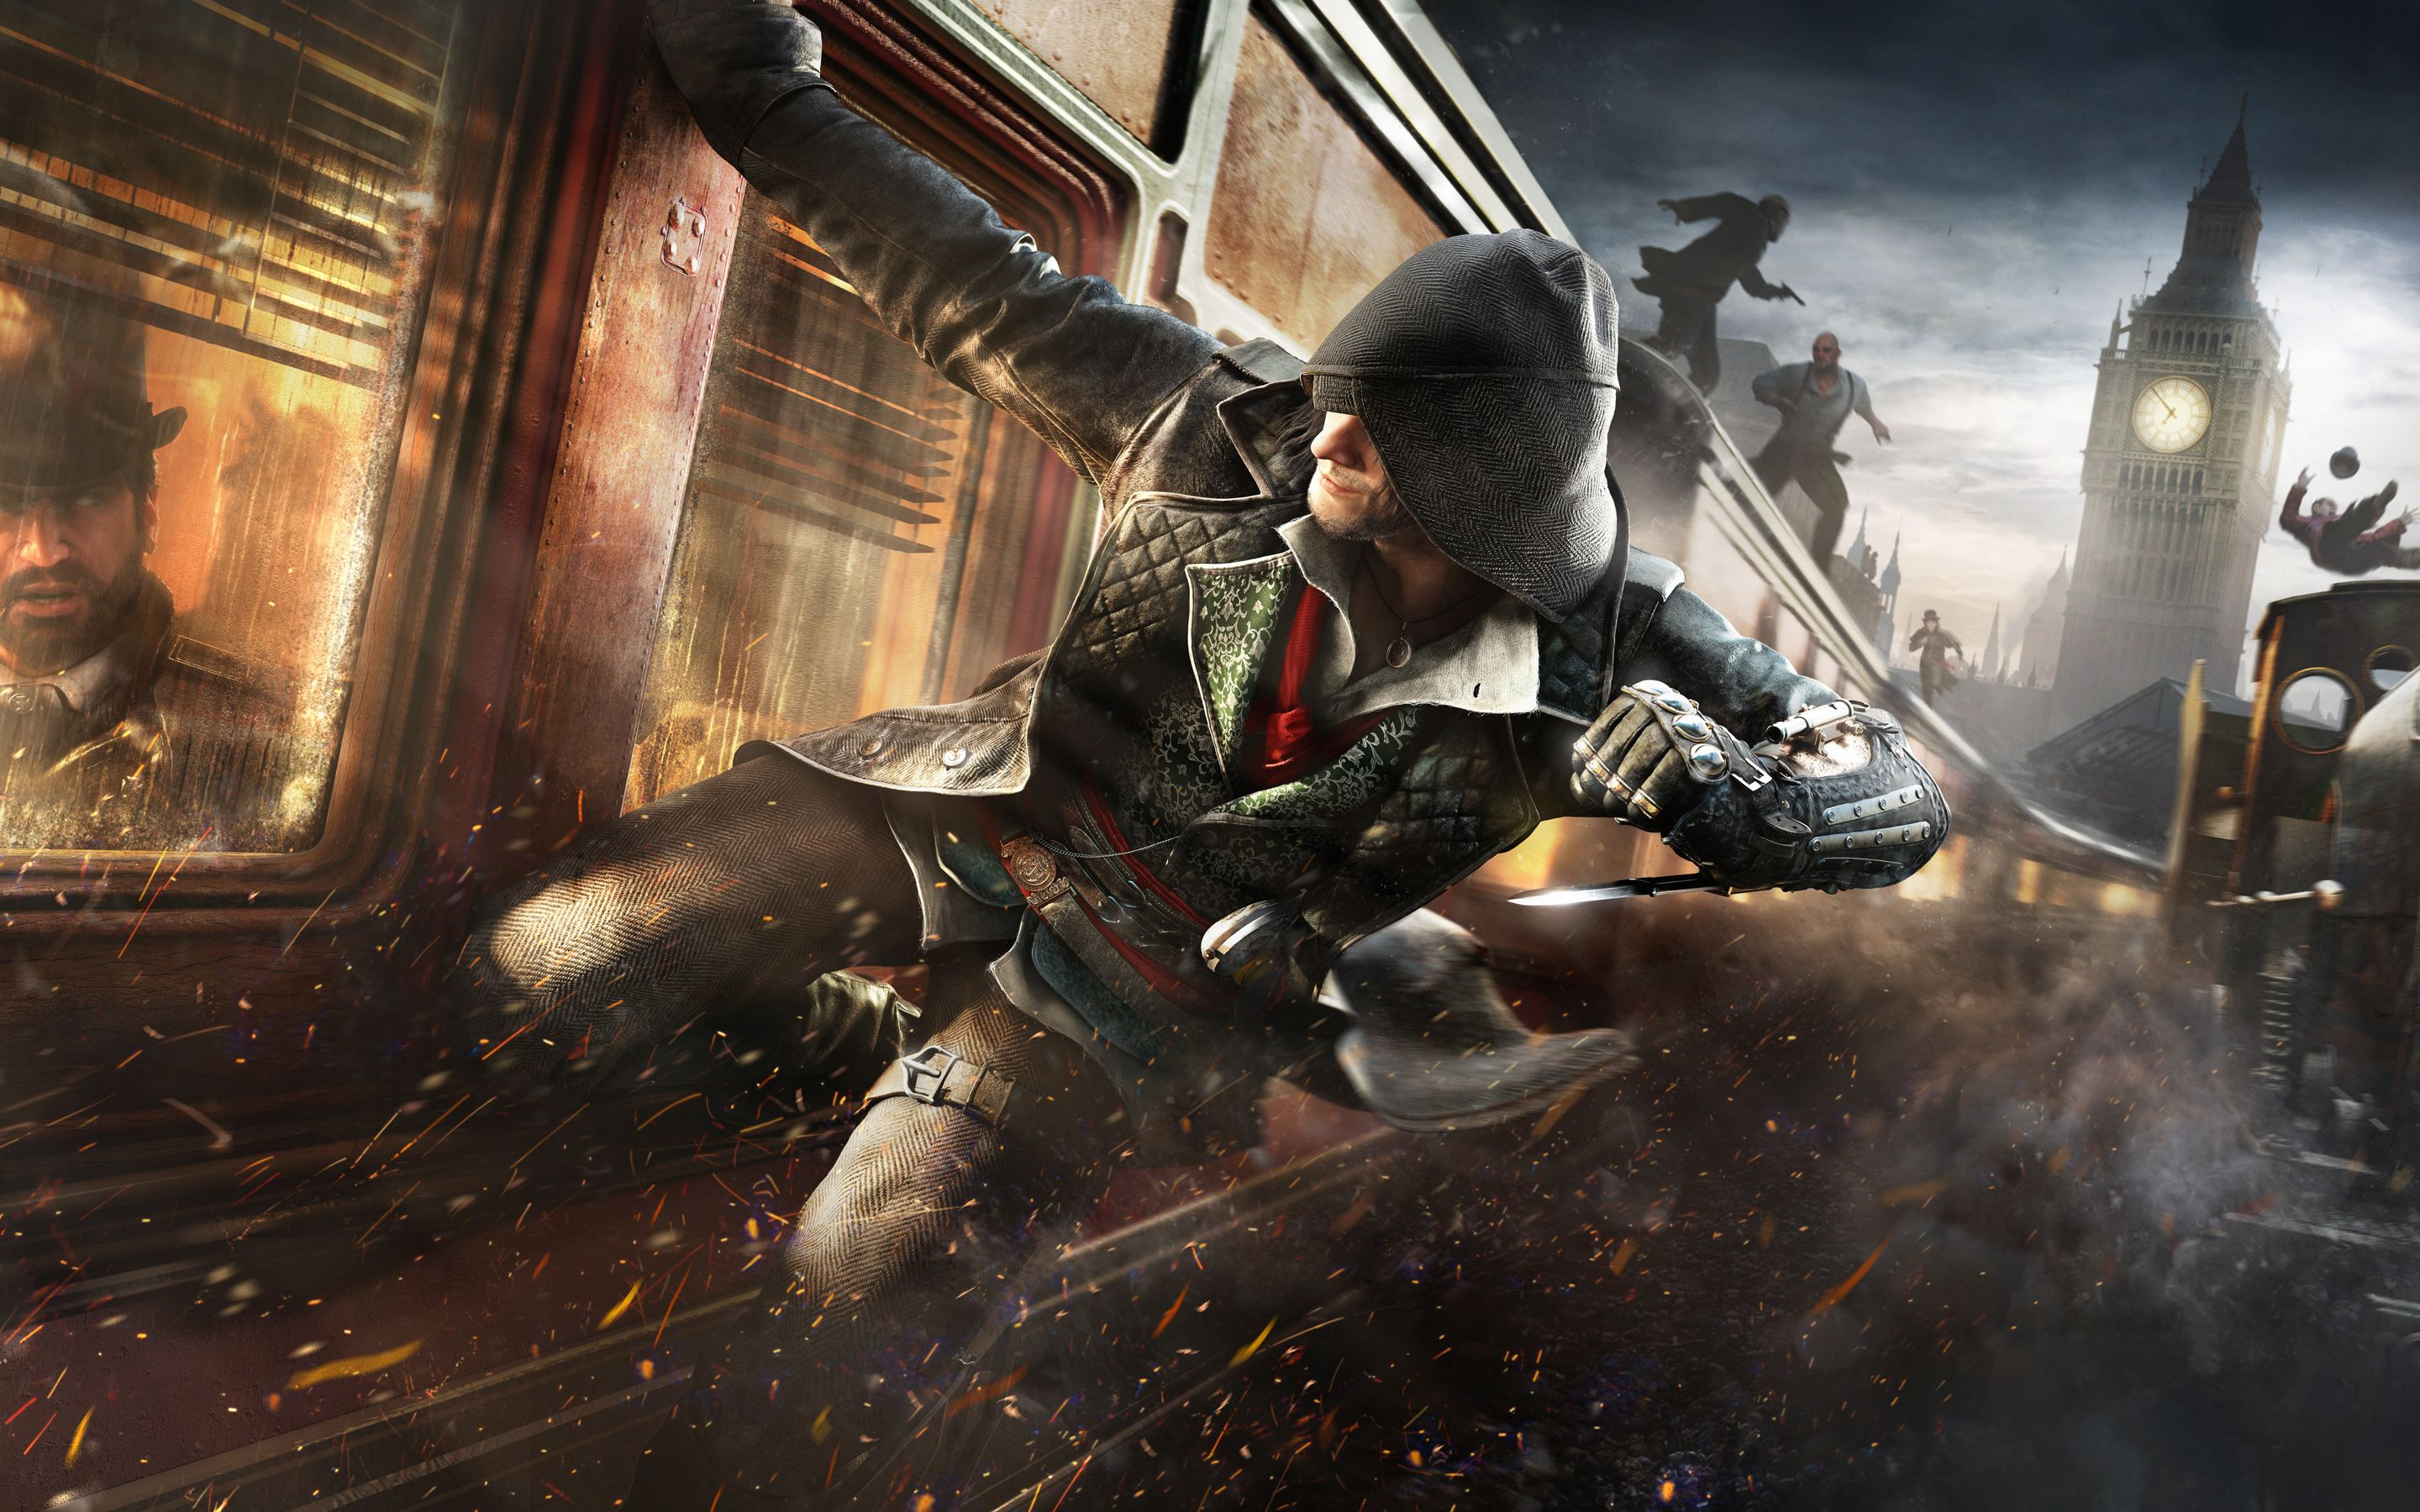 Assassin S Creed Syndicate Assassin S Creed Wallpaper Assassins Creed Assassins Creed Syndicate